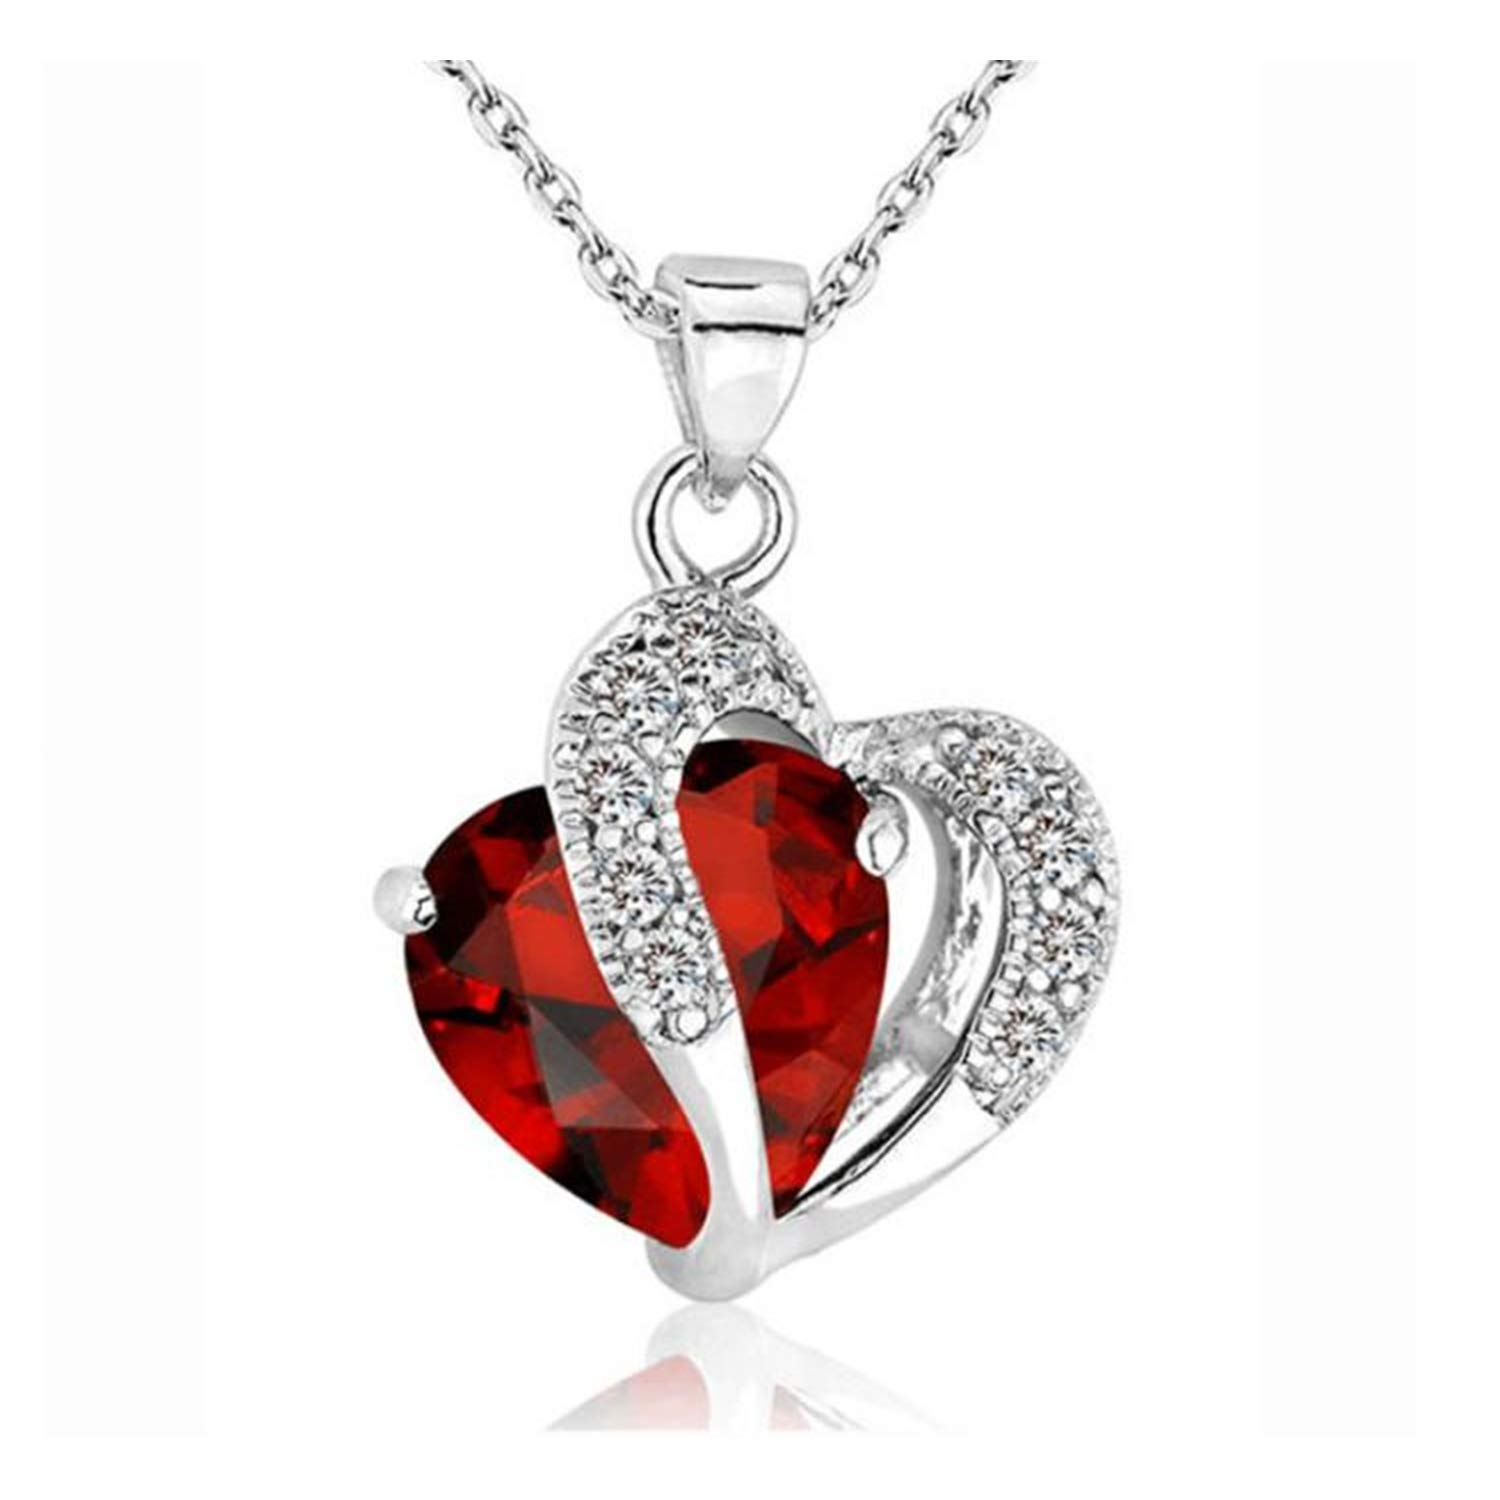 HUAMING Fashion 2 Heart Crystal Pendant Necklace Two Tones Dainty Silver Chain Necklace Jewelry for Women Girls Elegant Necklace (Red)